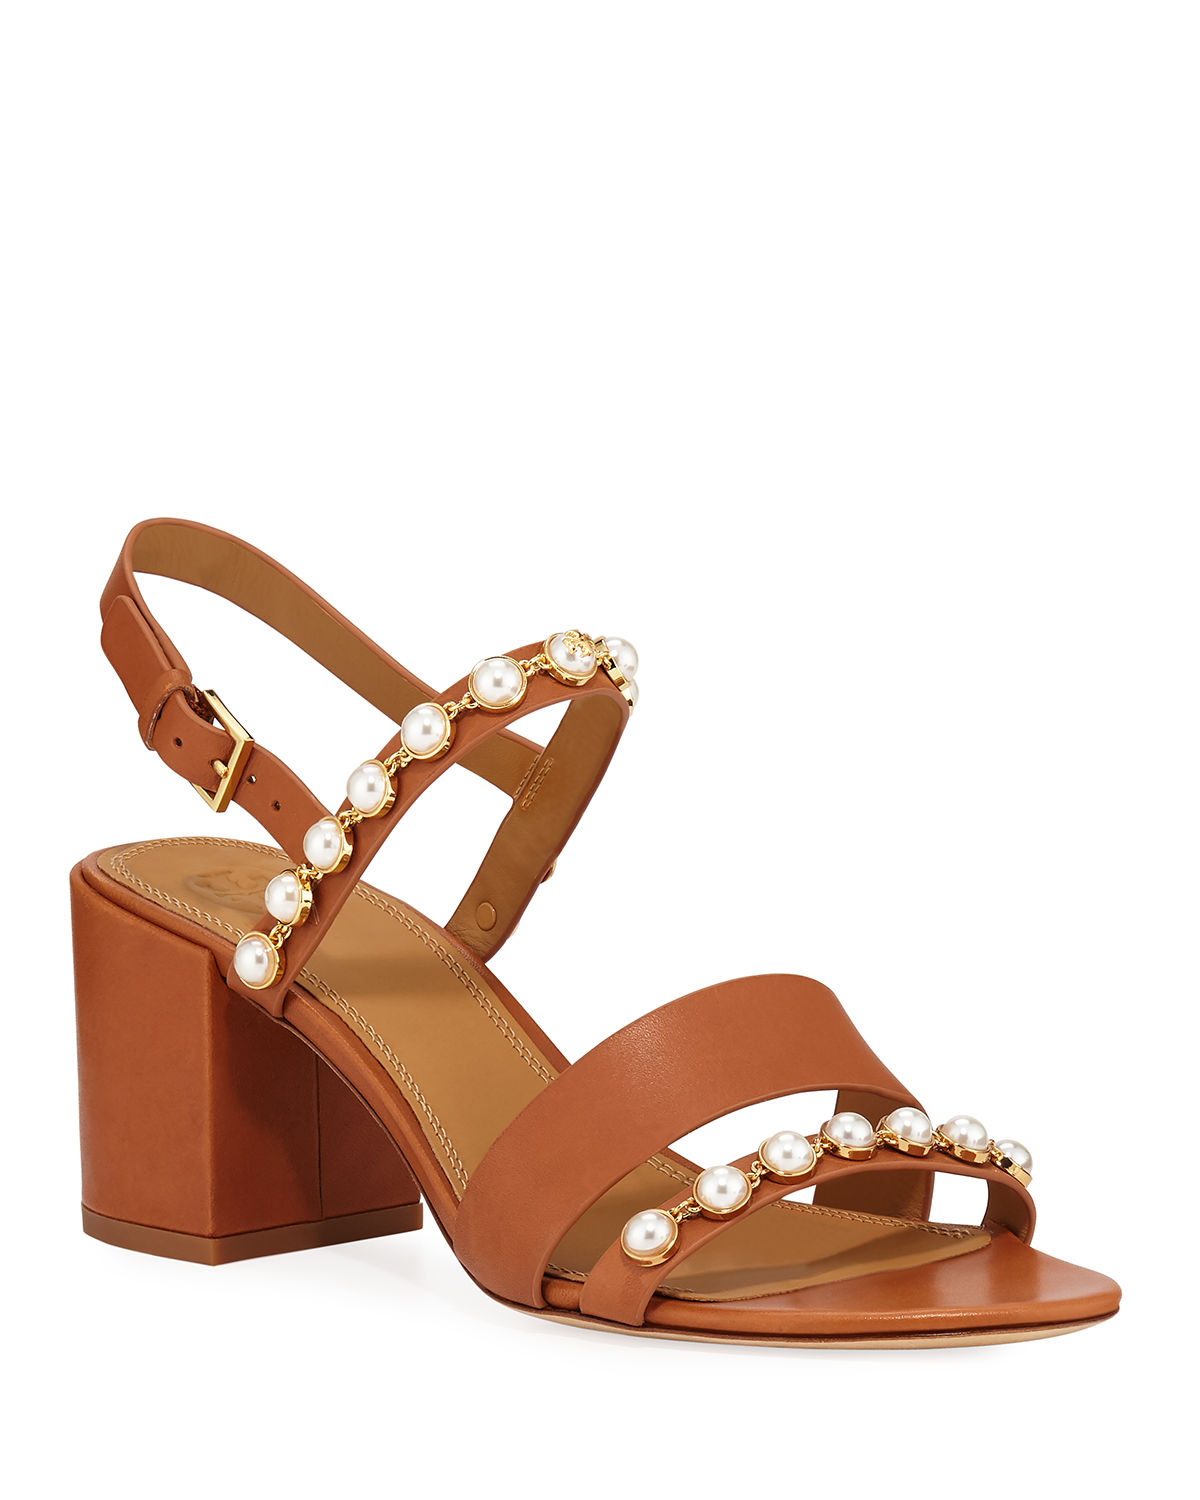 3c1a39cae2d Tory Burch Emmy Pearly Studded Block-Heel Sandals